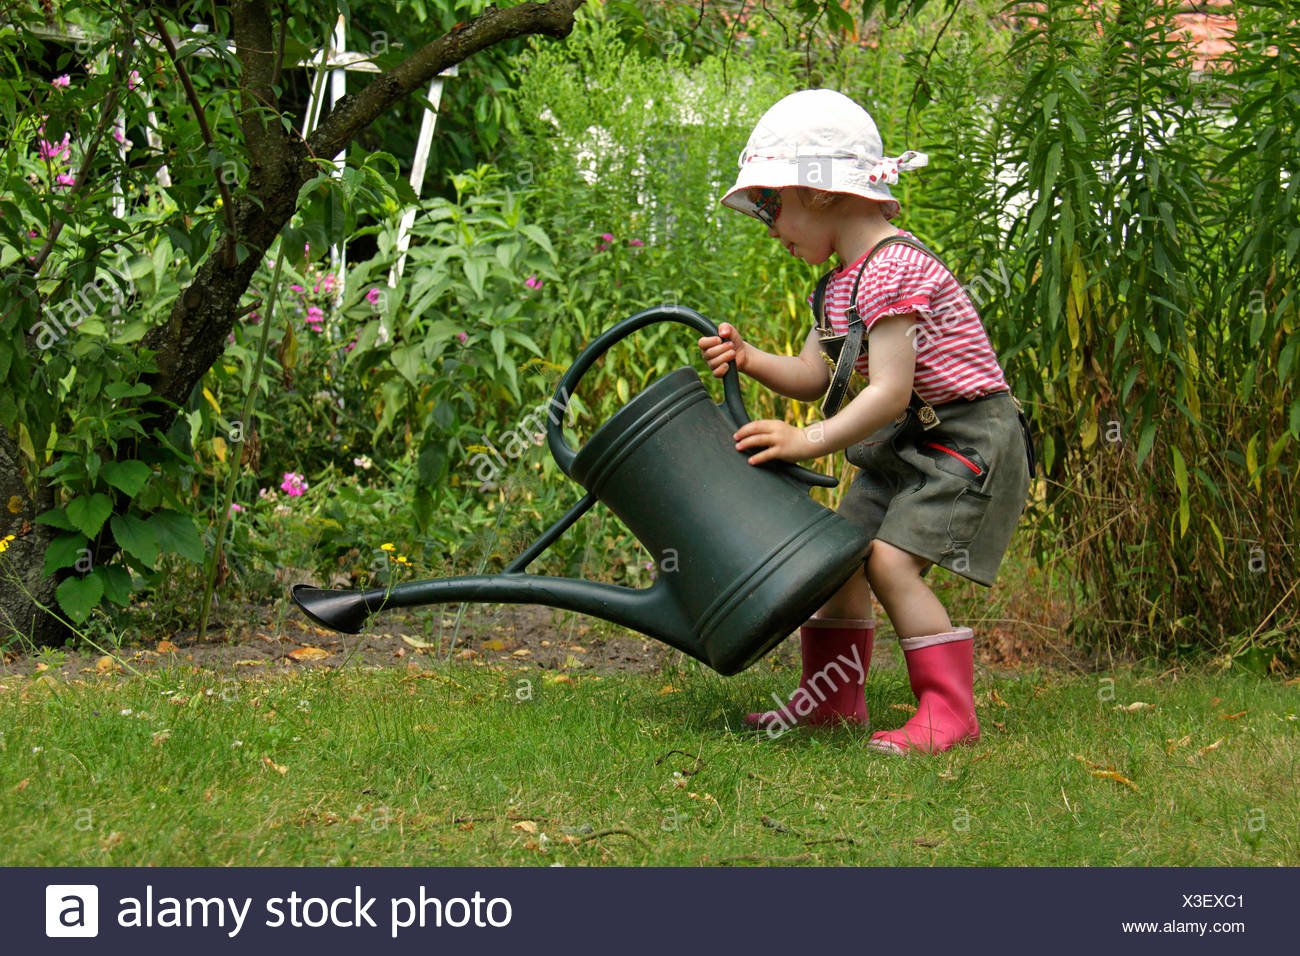 little girl in lederhosen playing in the garden with a watering can, Germany - Stock Image